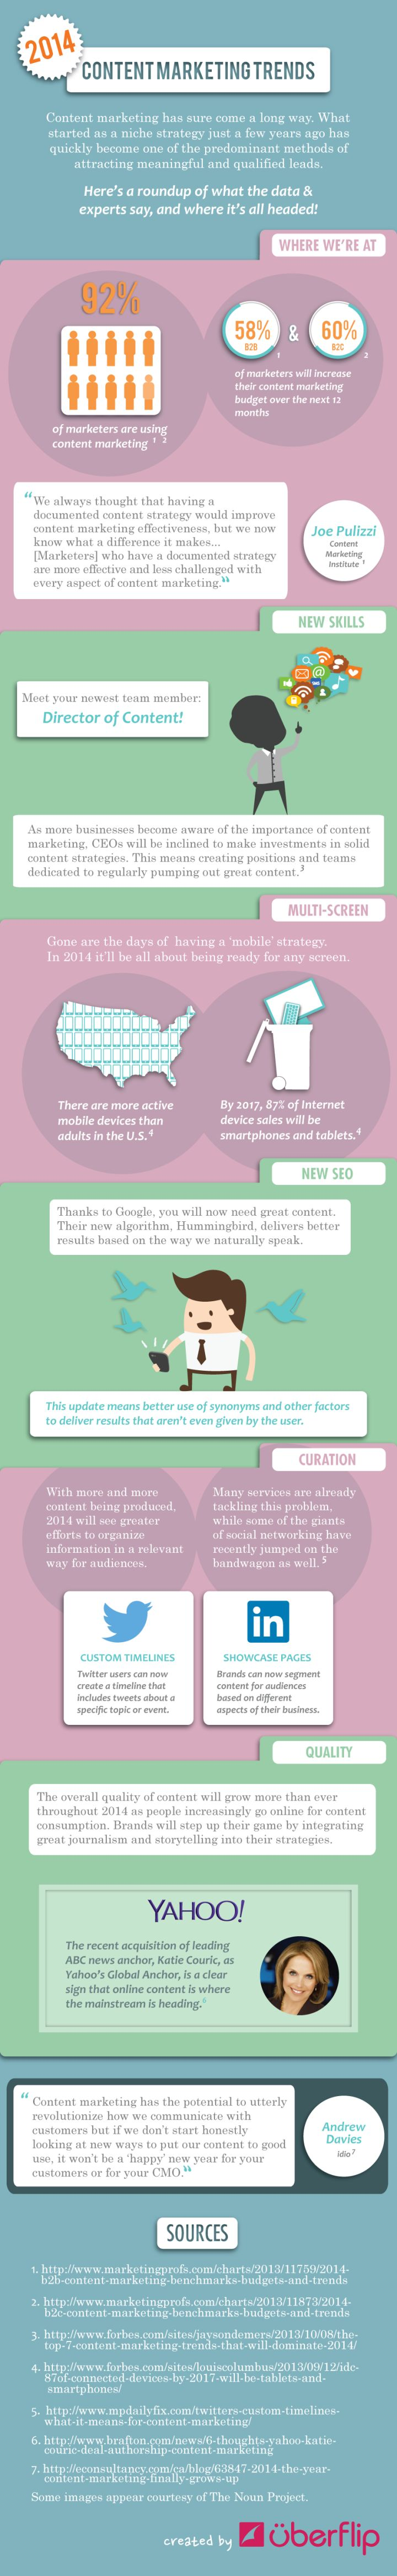 Content Marketing Trends For 2014 #infographic